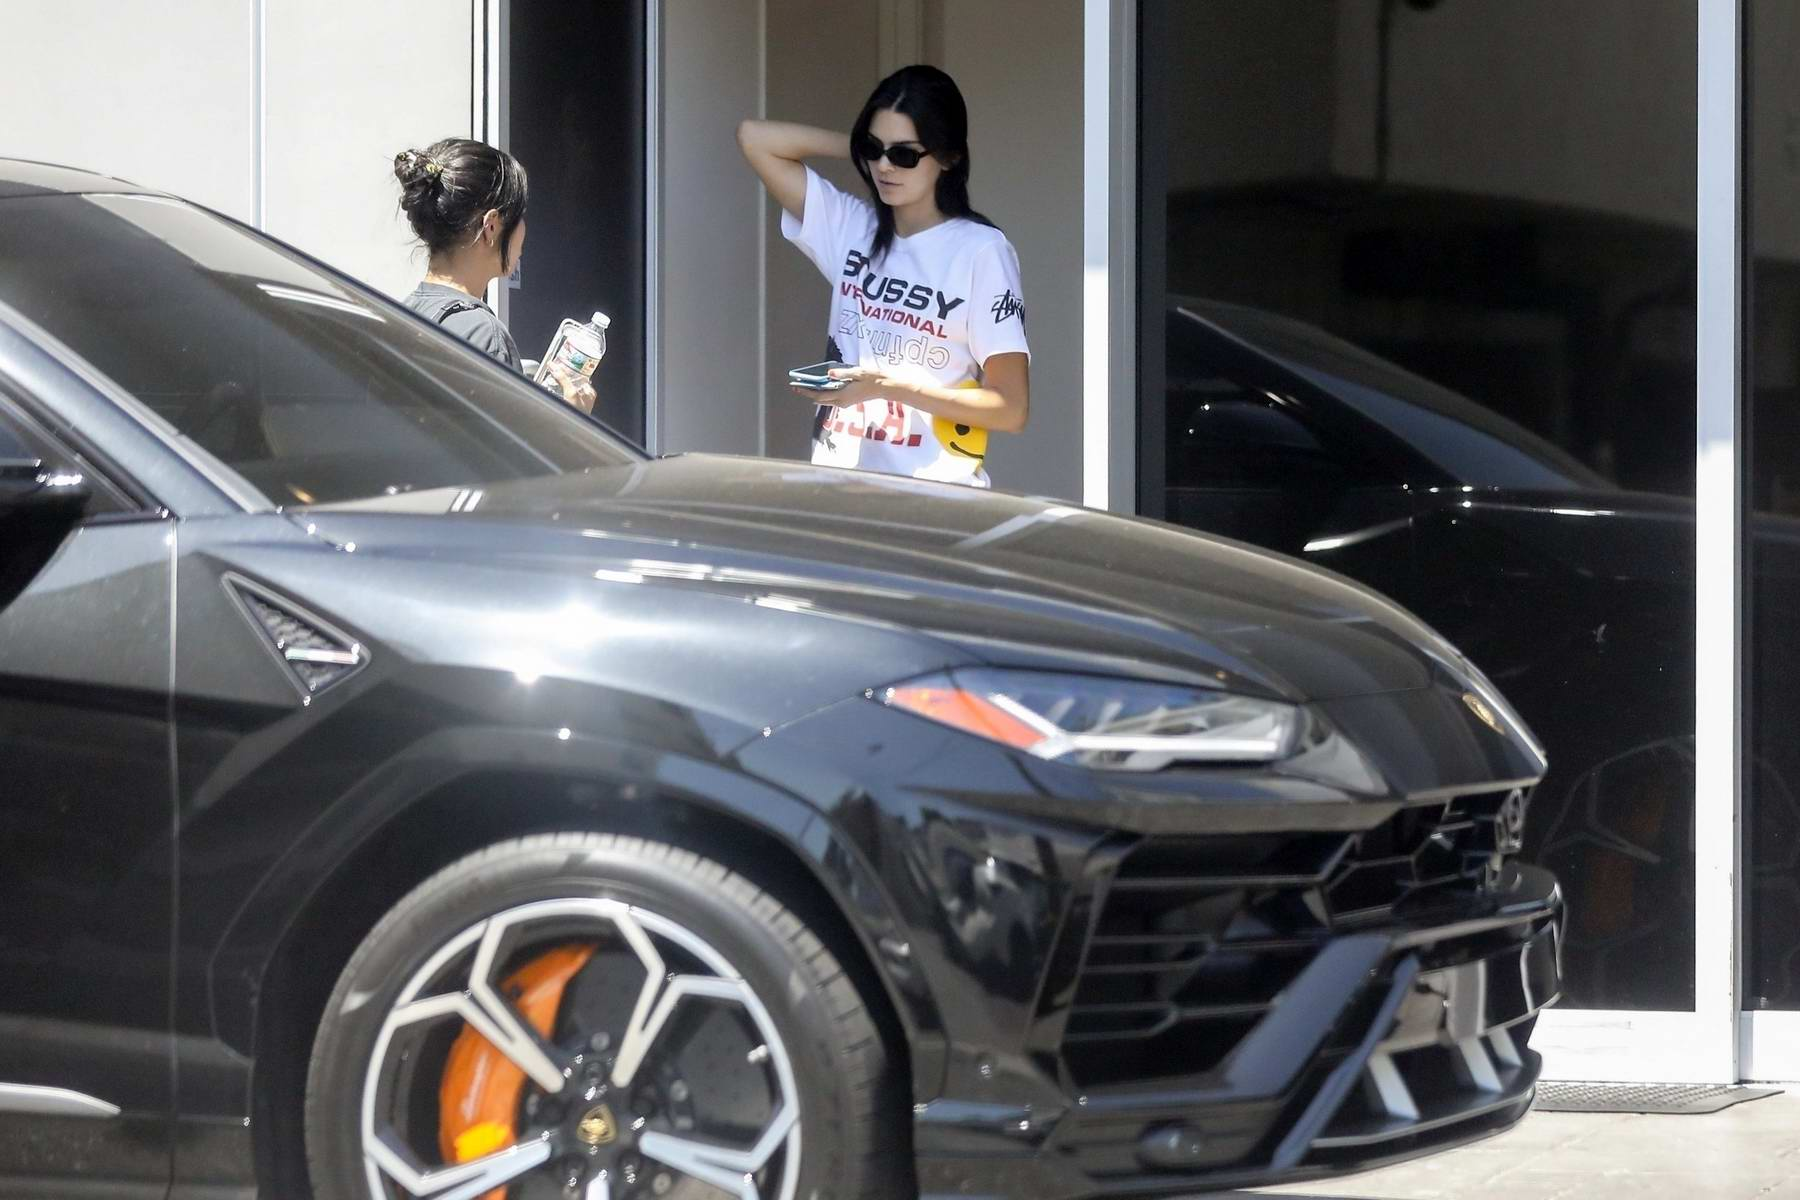 Kendall Jenner Keeps It Casual While She Brings Her Ferrari In For A Service At The Ferrari Dealer In Beverly Hills Los Angeles 030919 4